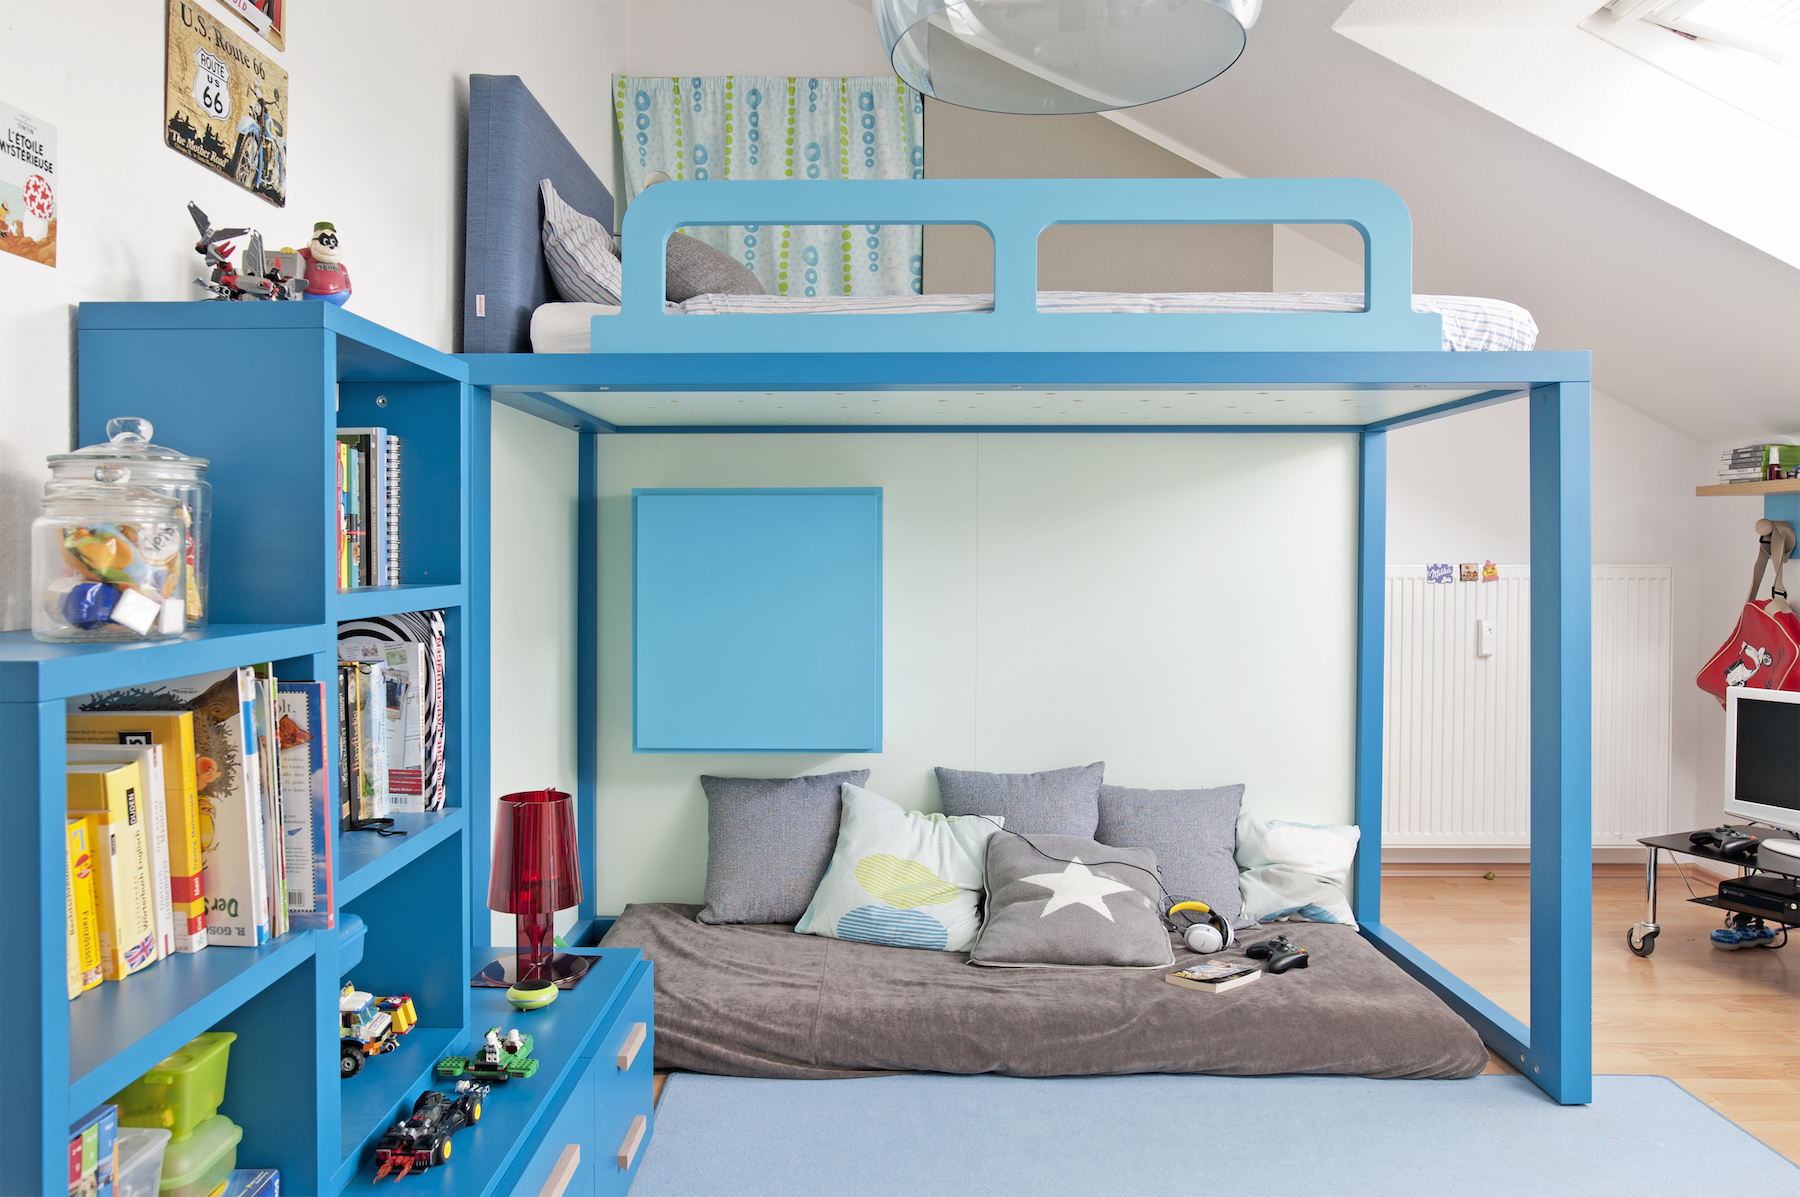 wandgestaltung kinderzimmer jungen. Black Bedroom Furniture Sets. Home Design Ideas